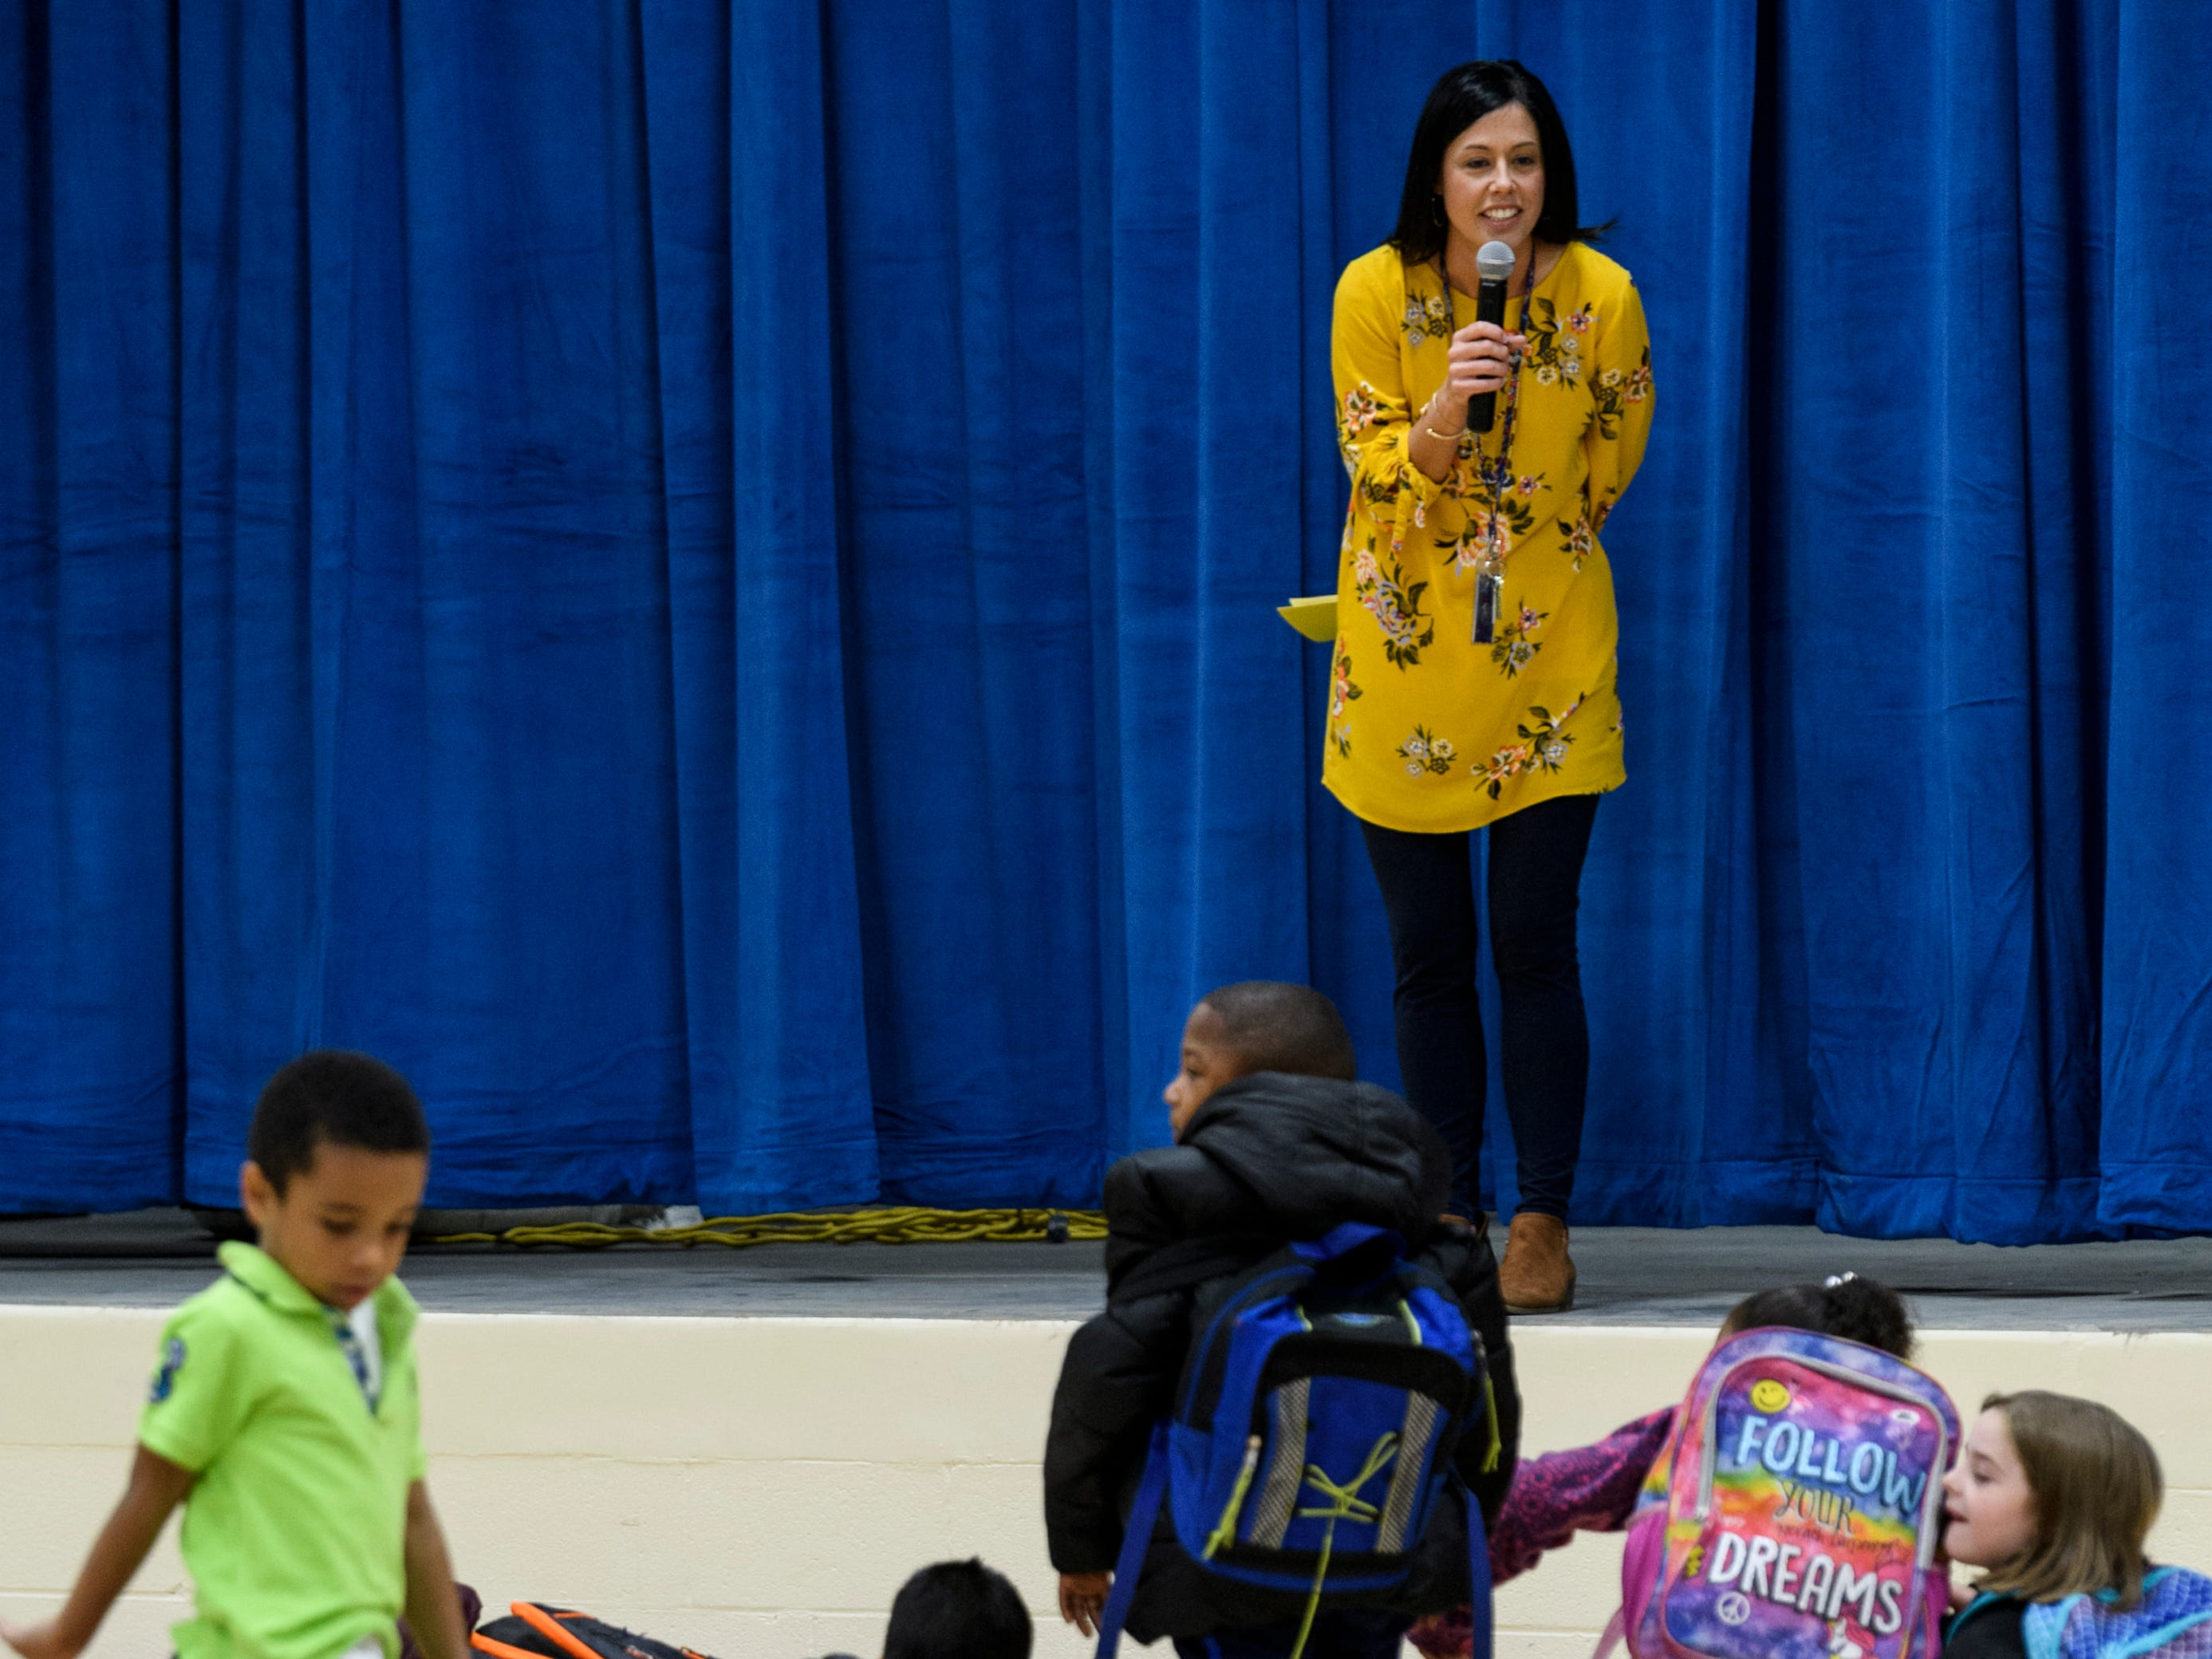 Principal Sarah Estabrook greets all the students during the morning assembly inside the gymnasium at the new Spottsville Elementary School building, Monday, Nov. 12, 2018.